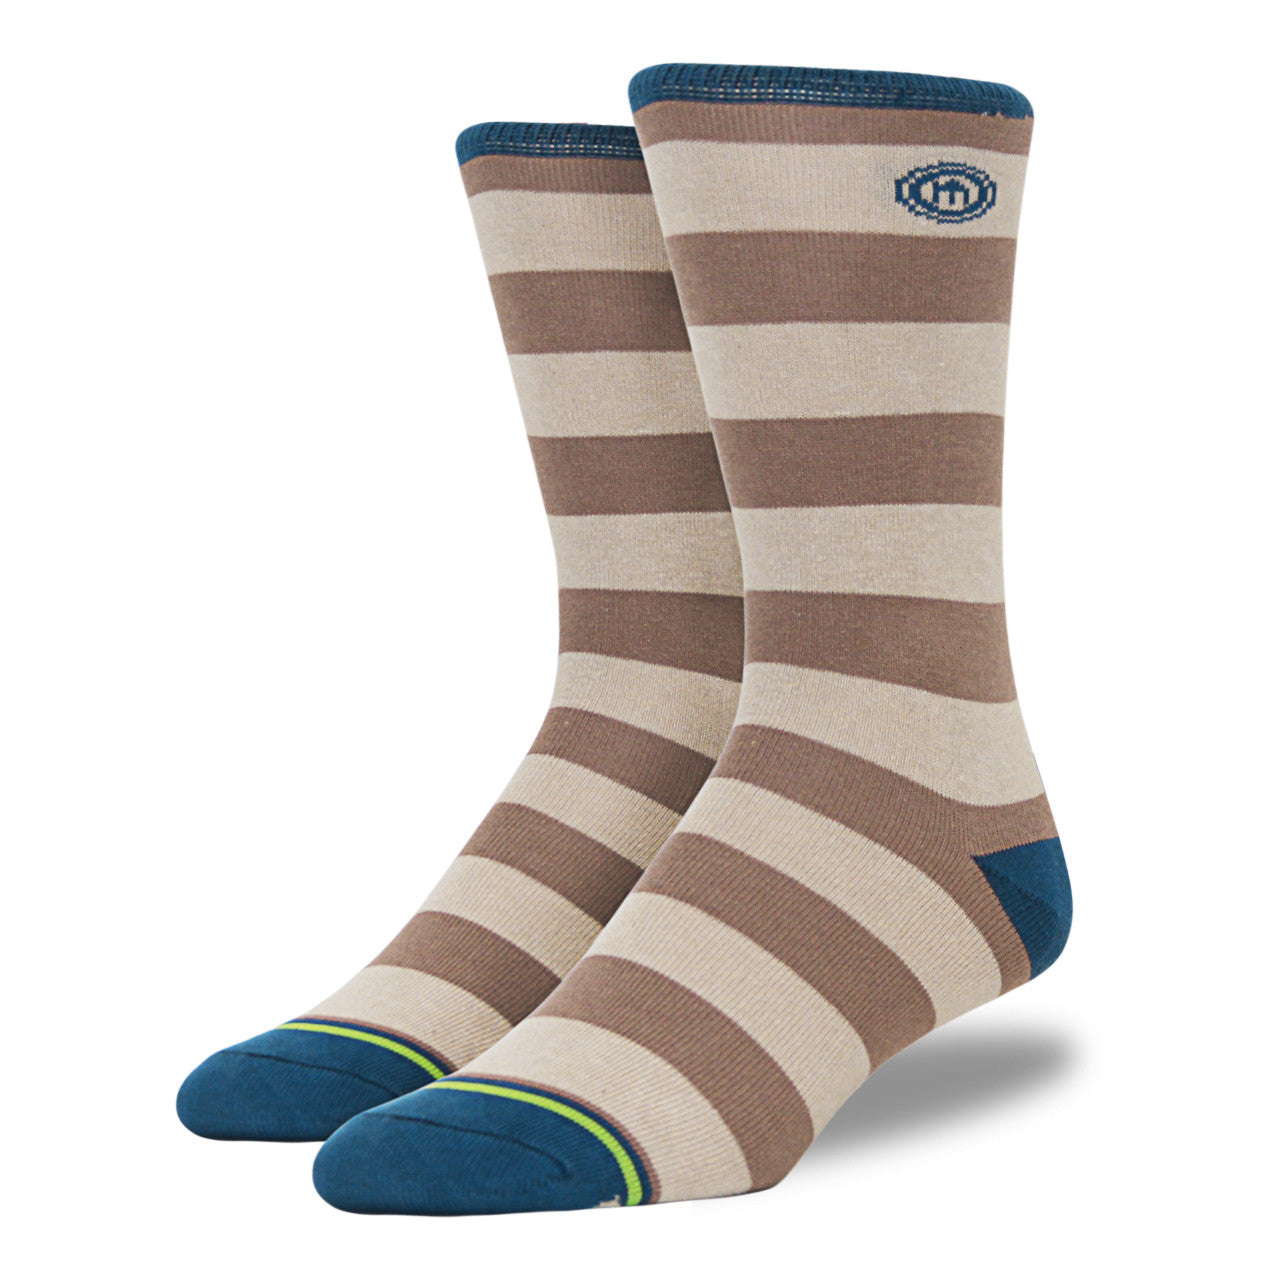 34caae59c The Cain - Men s Brown and Tan Striped Socks